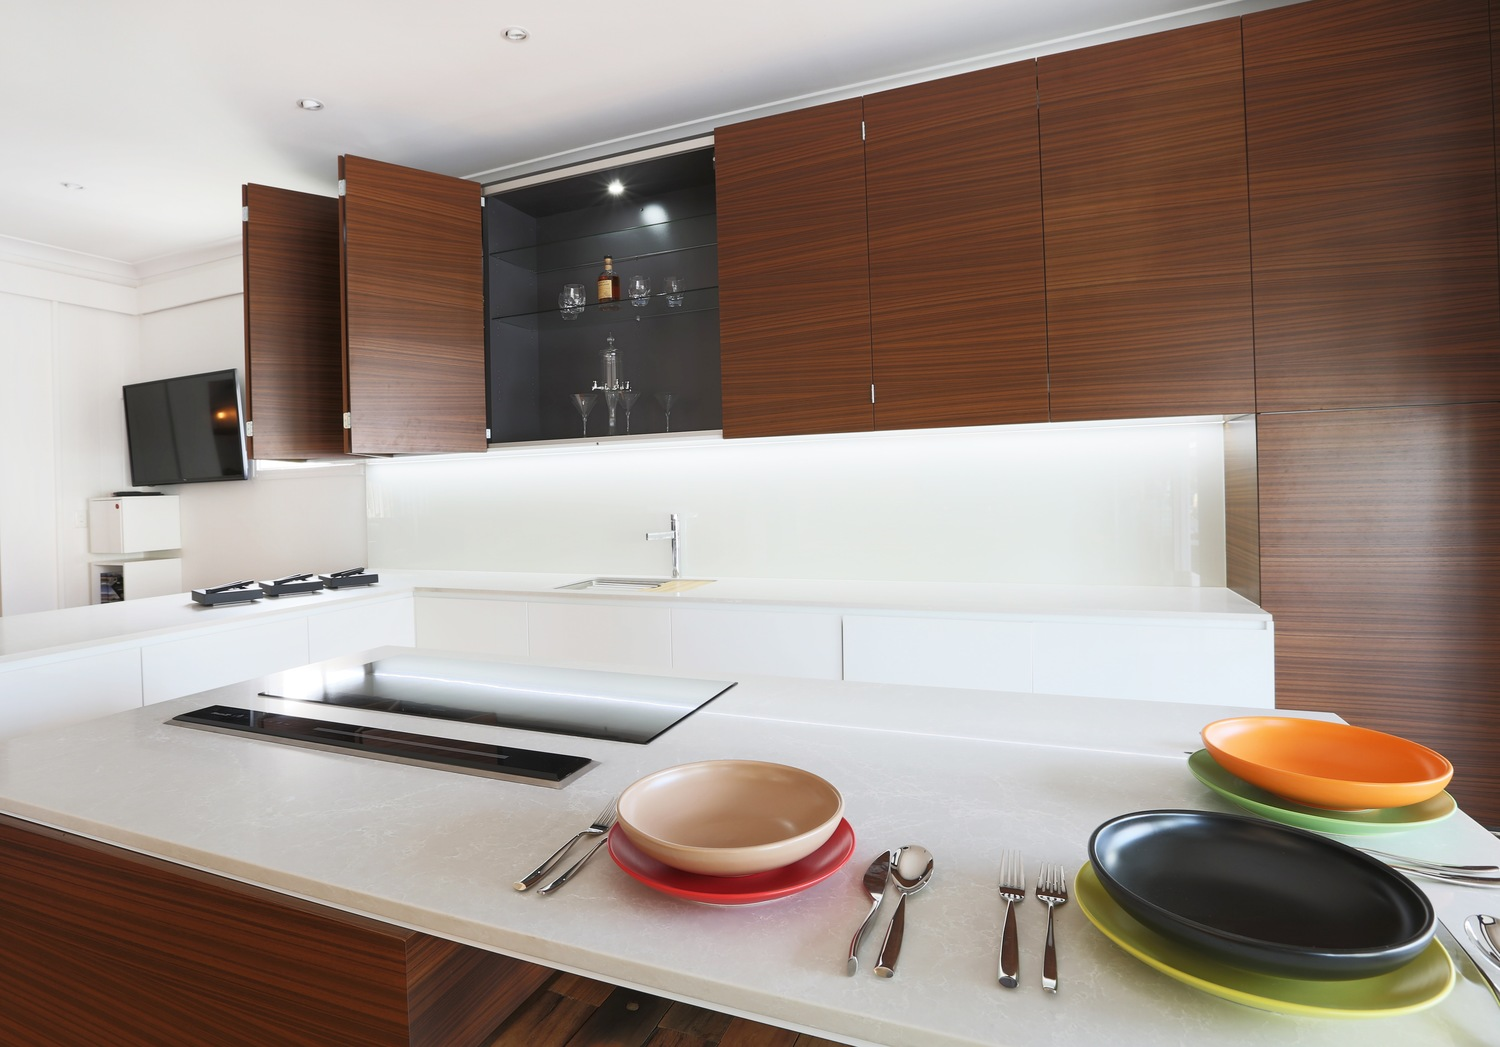 style kitchens by design. Contact  Style Kitchens by Design